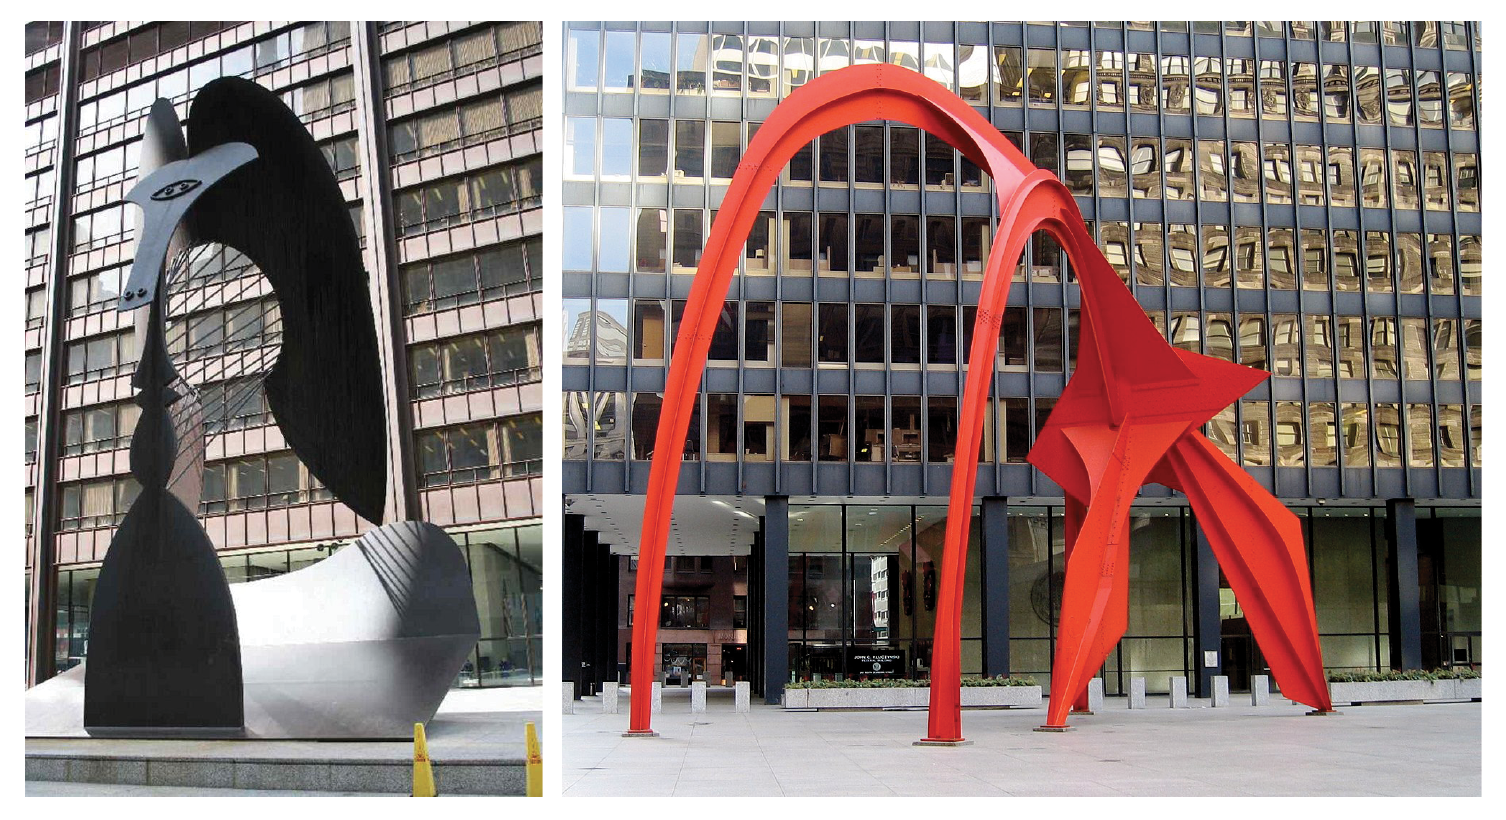 Left: Pablo Picasso, Untitled, 1967. Right: Alexander Calder,  Flamingo , 1974.